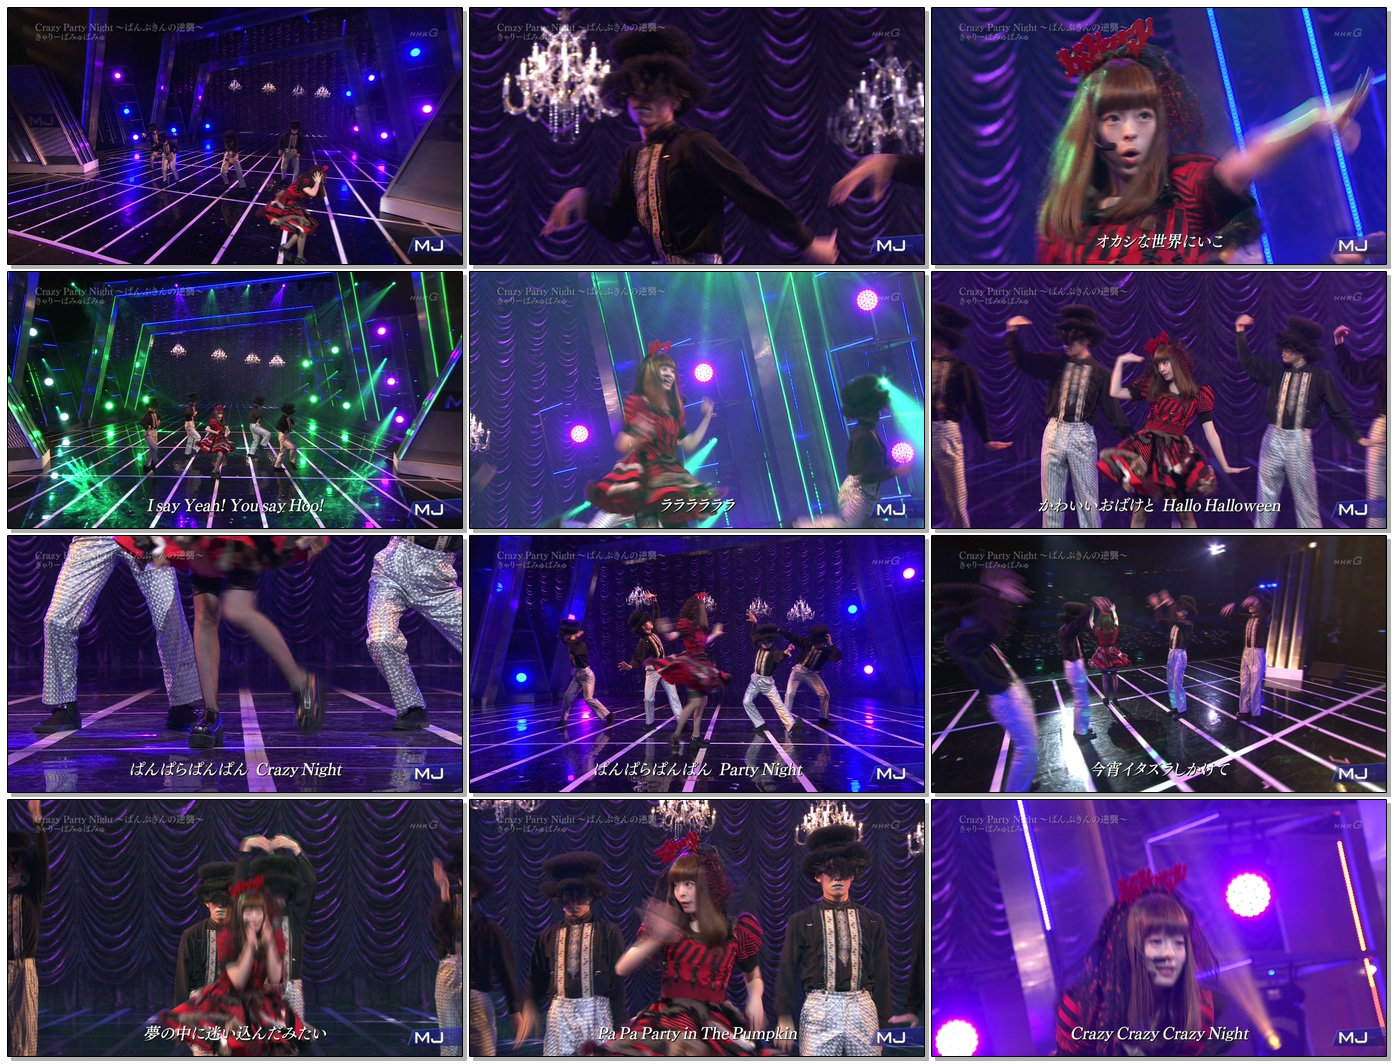 20170909.2345.10 Kyary Pamyu Pamyu - Crazy Party Night ~Pumpkin no Gyakushuu~ (Music Japan 2015.09.06 HDTV) (JPOP.ru).ts.jpg